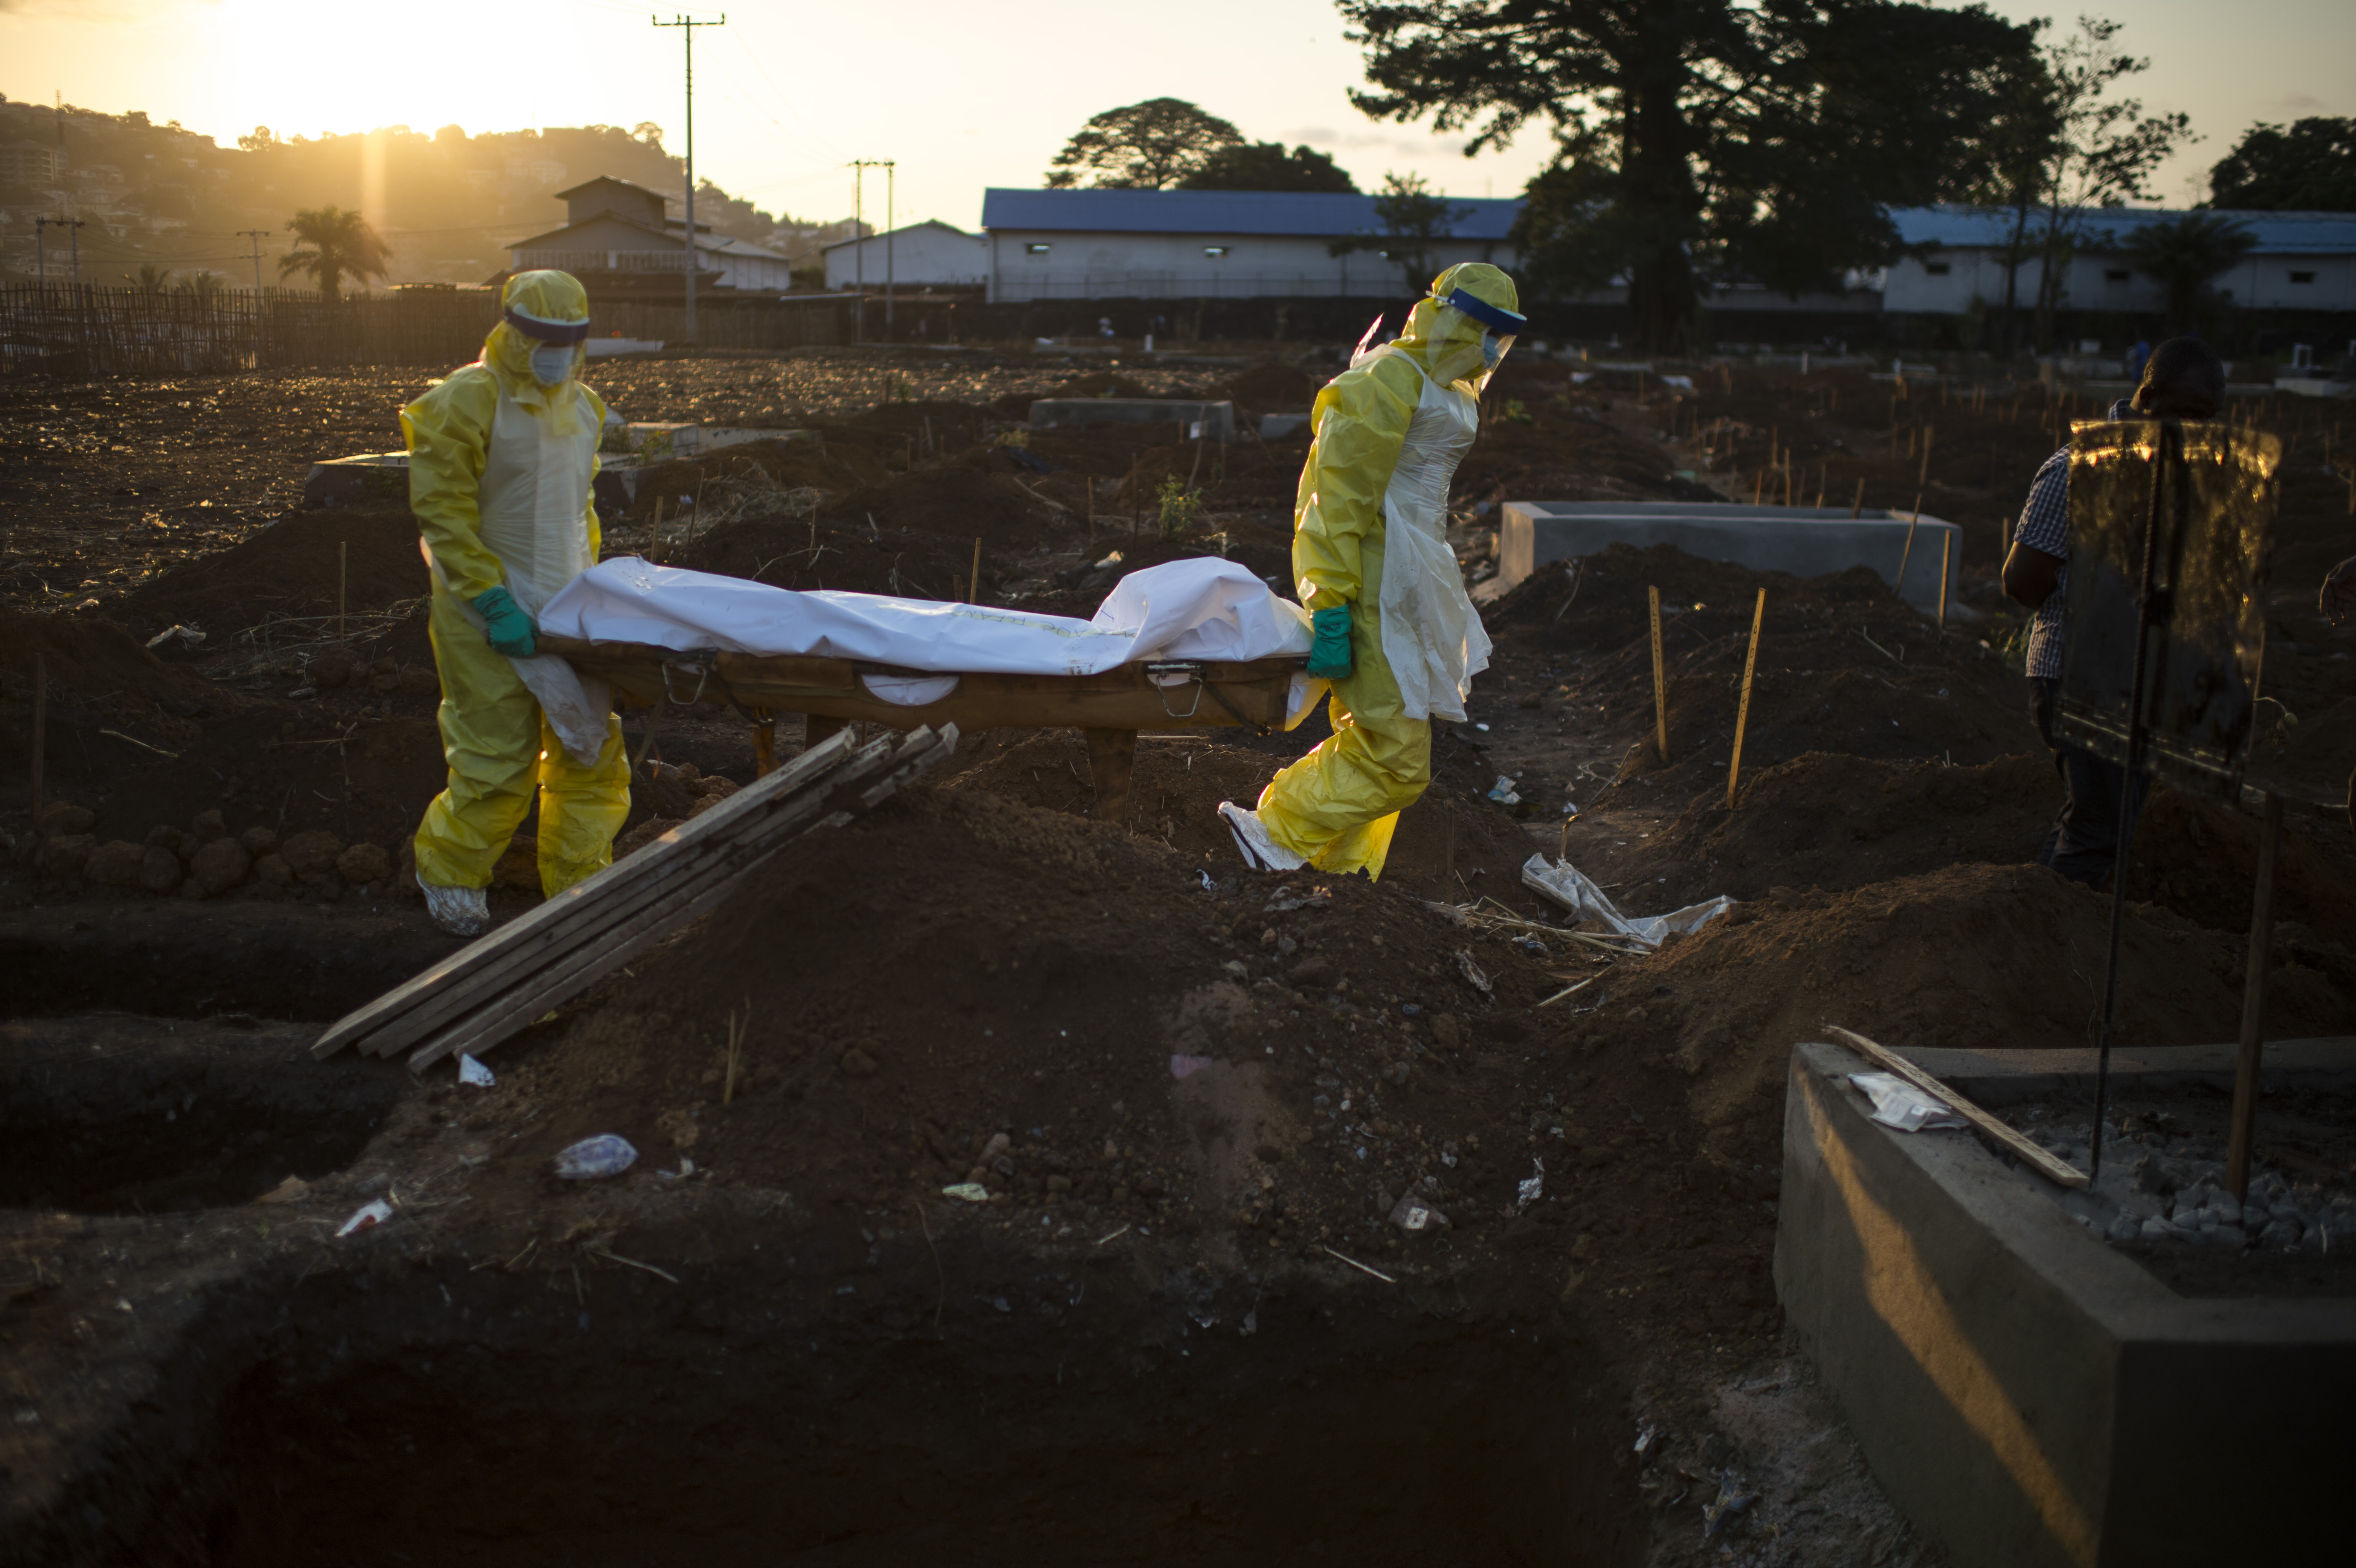 Members of the burial team carry a body to his grave at King Tom Cemetery in Freetown, Sierra Leone, on Nov. 19, 2014.